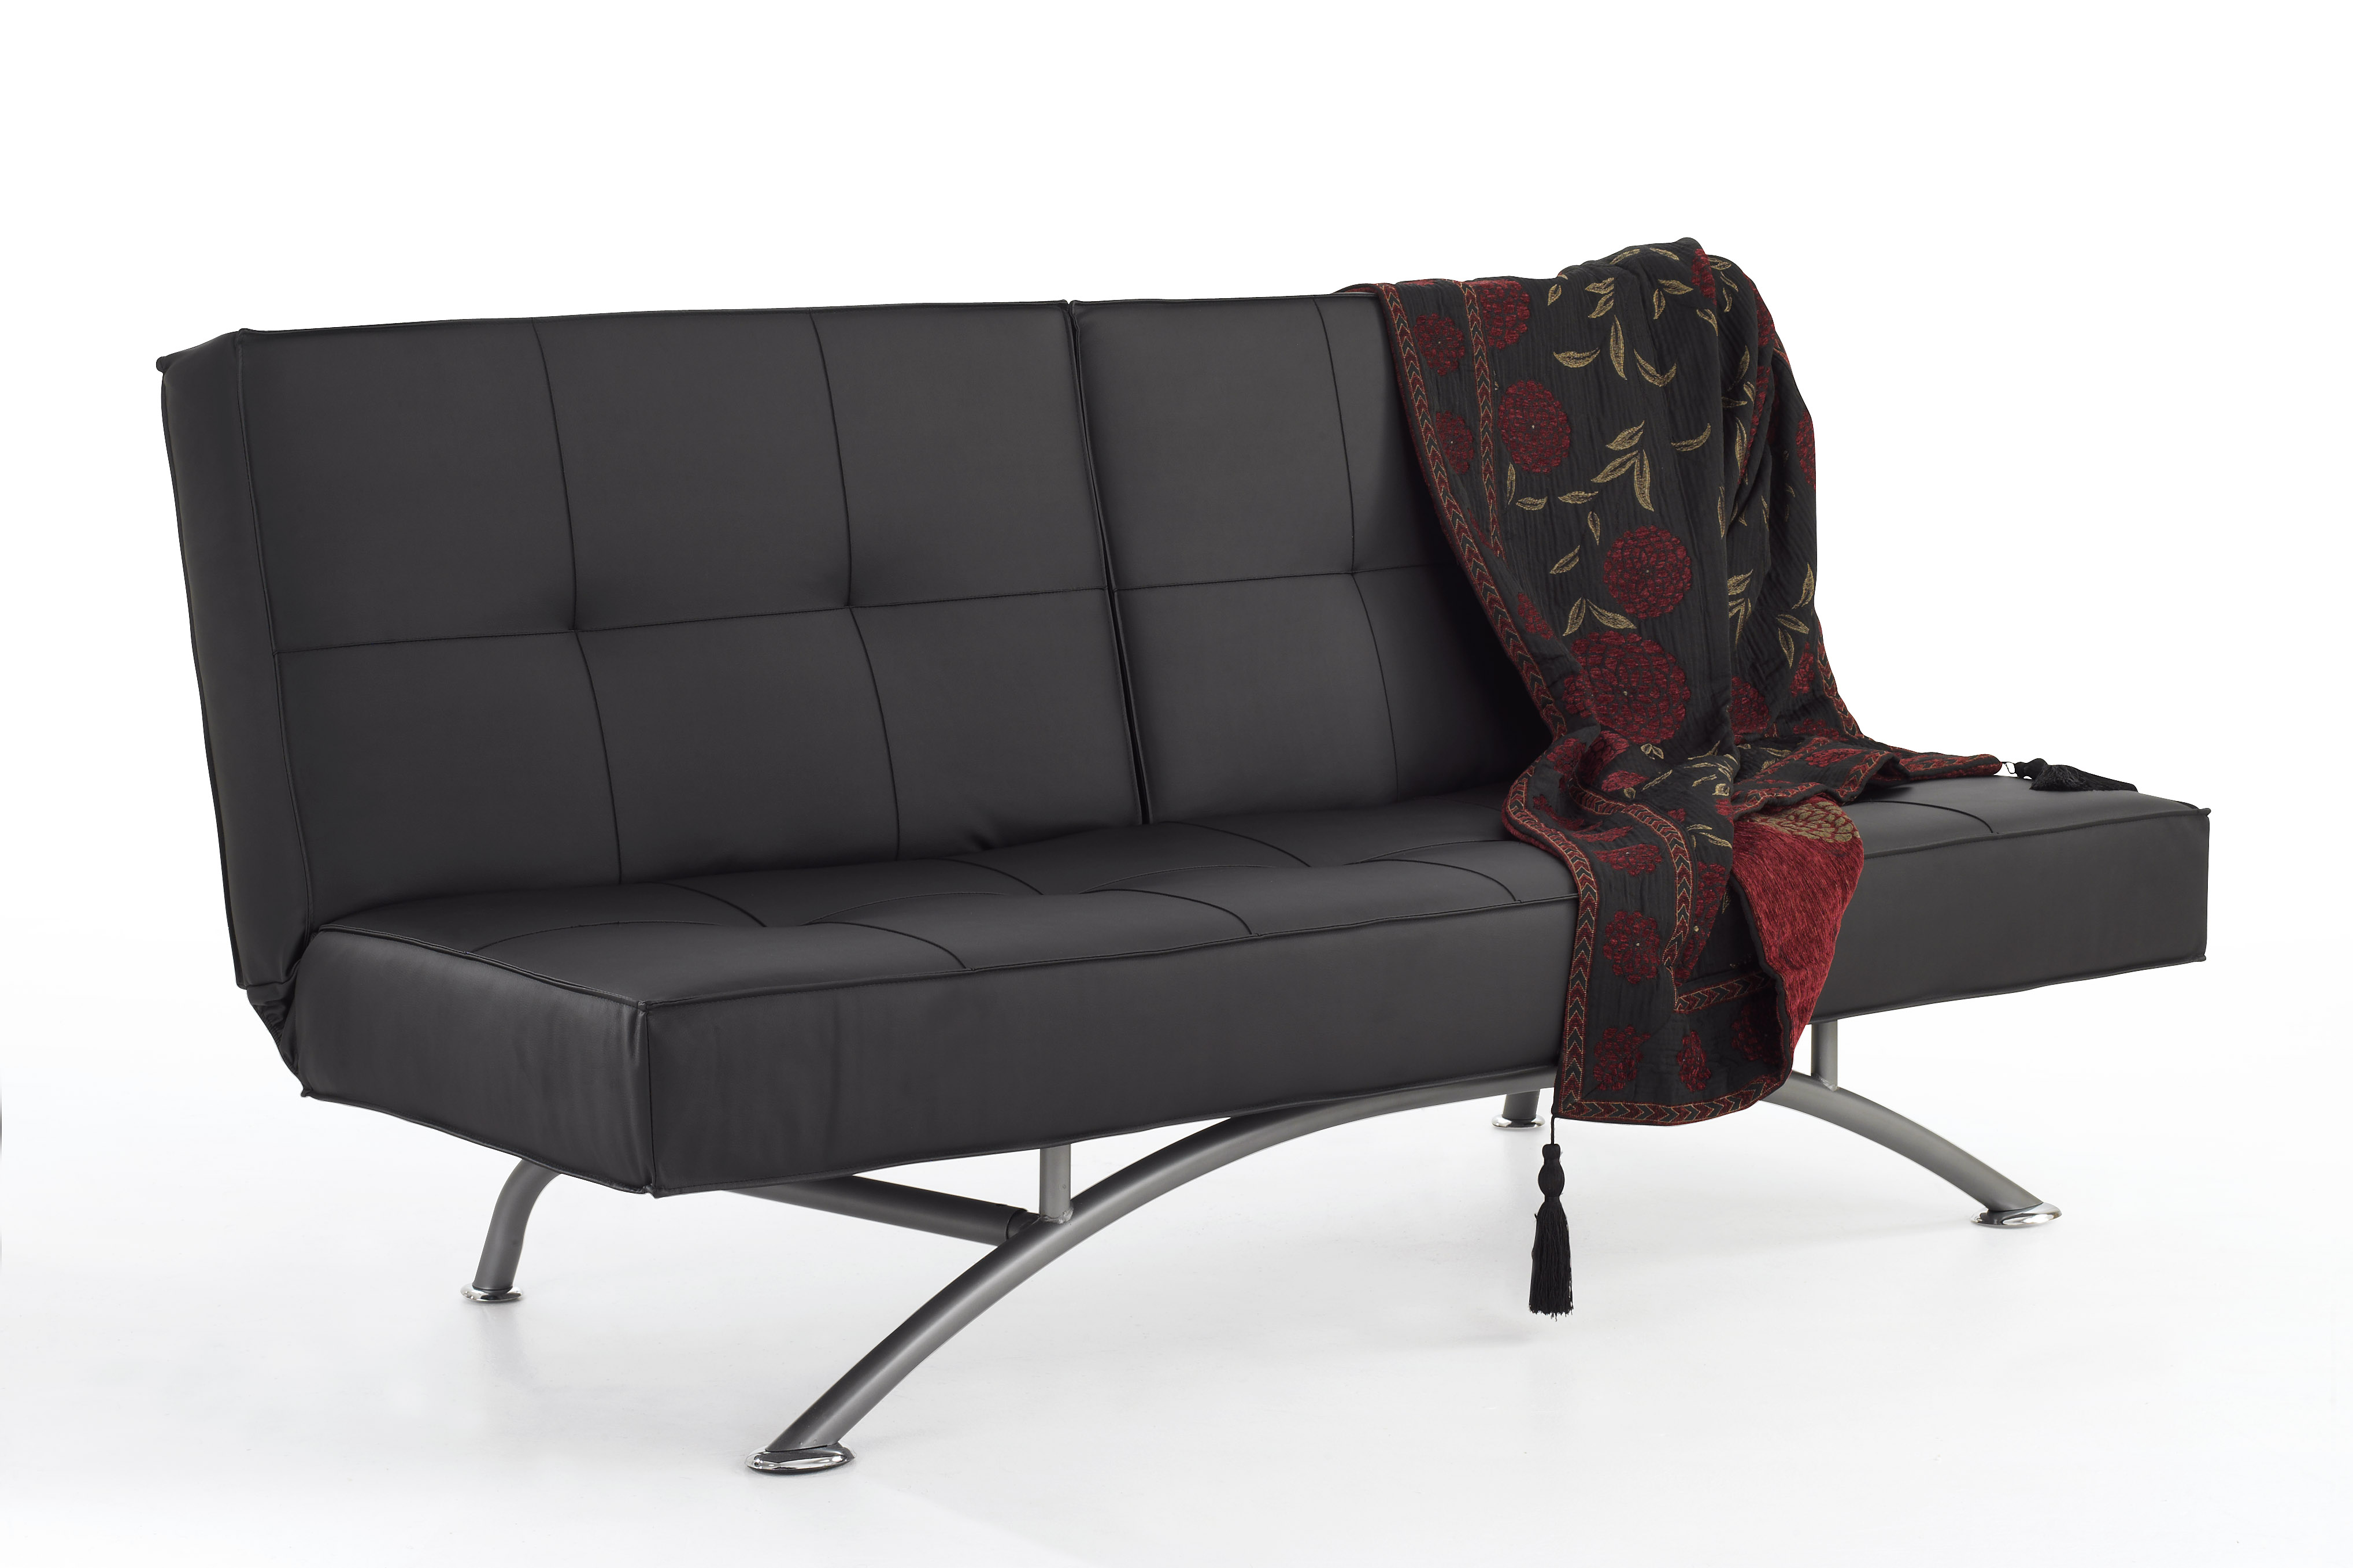 Black Modern Sofa Bed Sheets